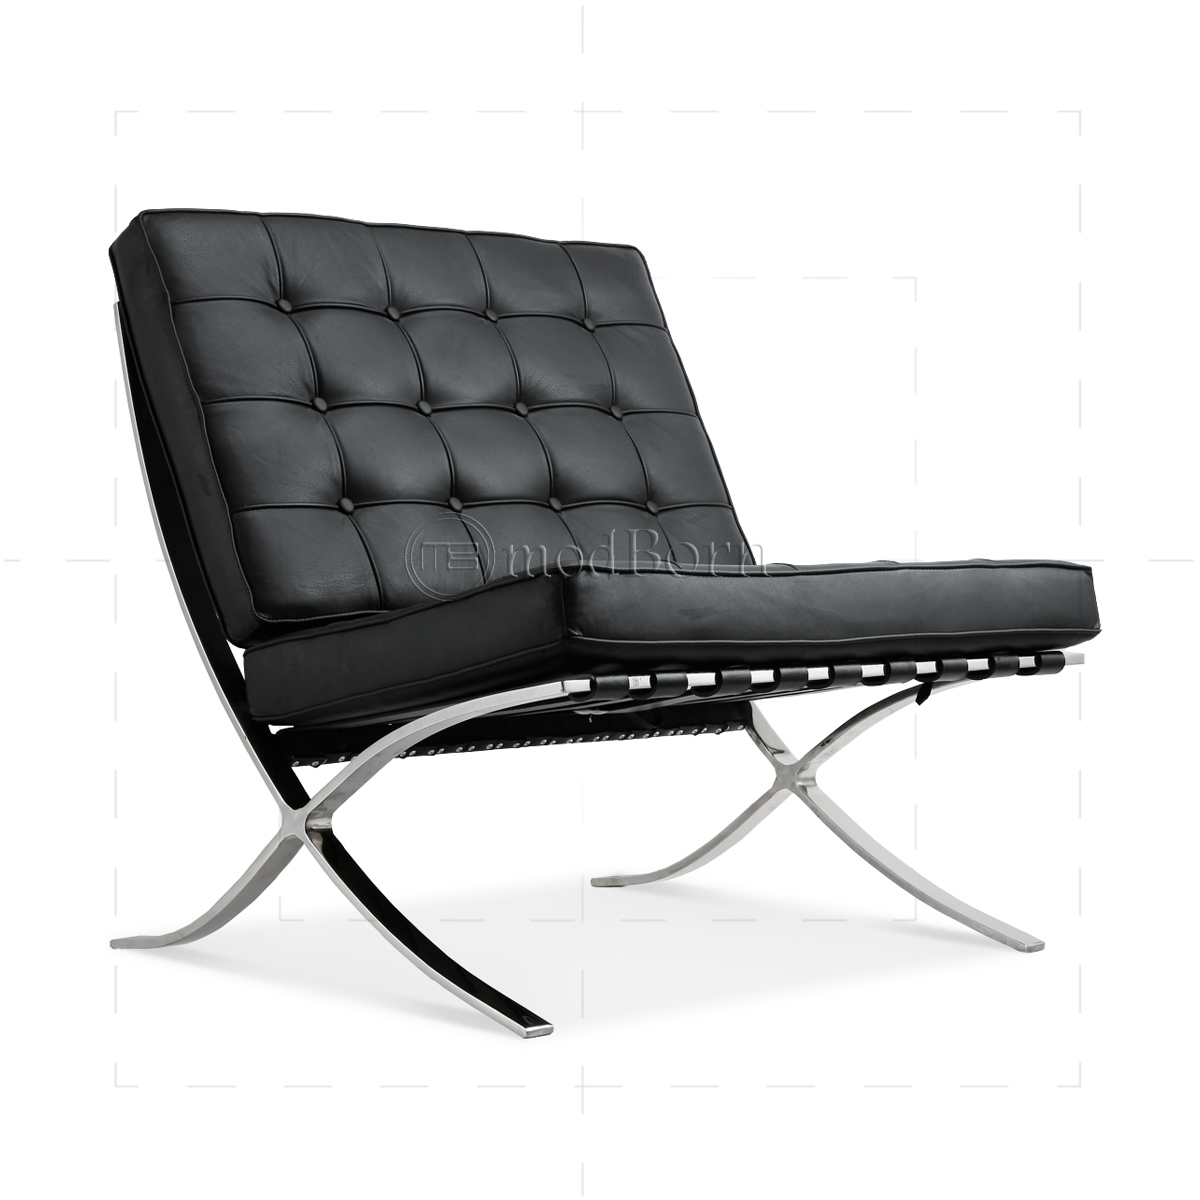 Ludwig mies van der rohe barcelona style chair black for Mies van der rohe replica